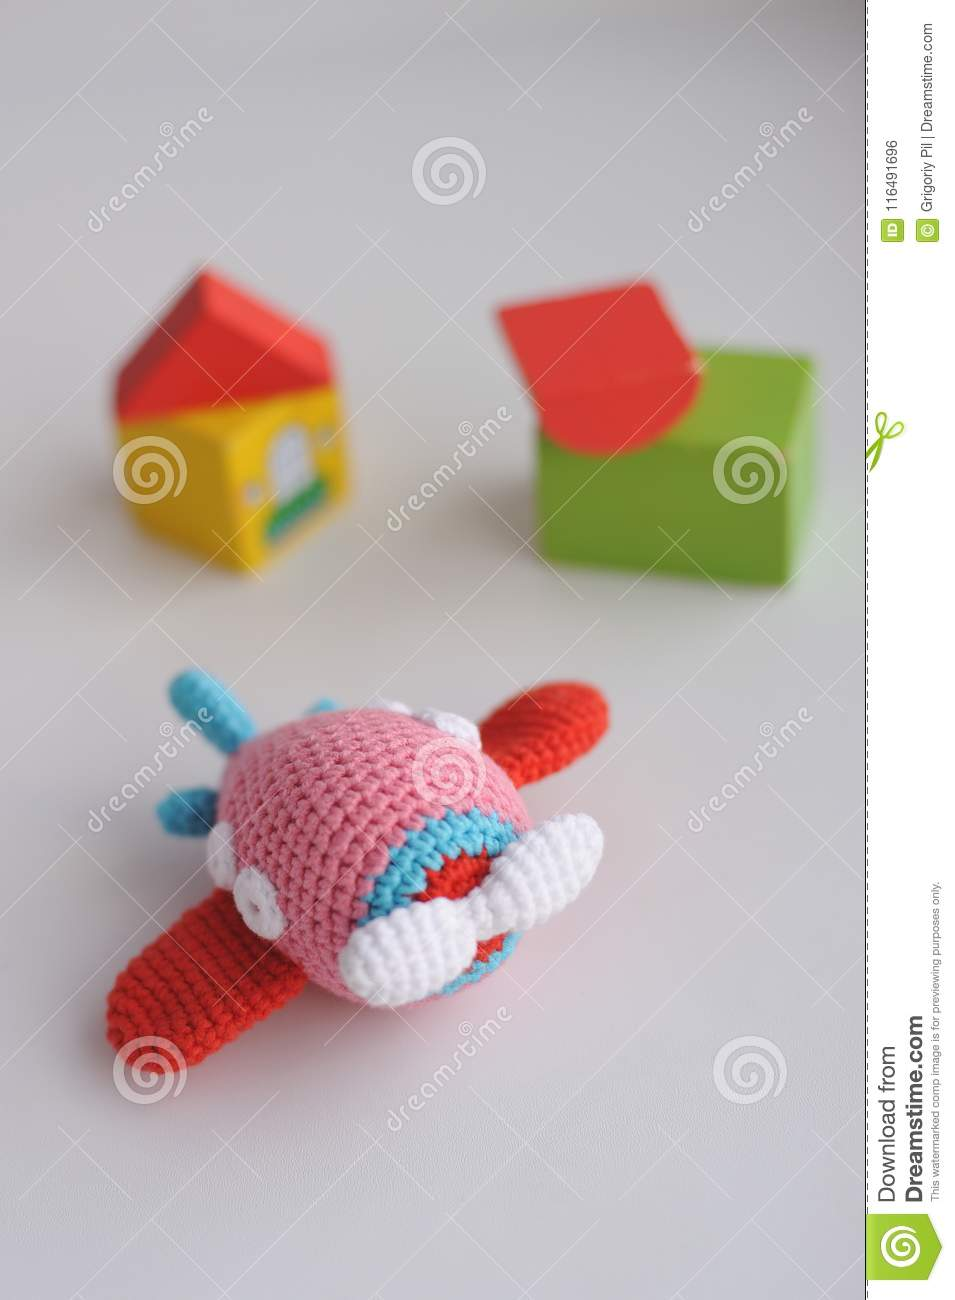 Knitted toy - airplane